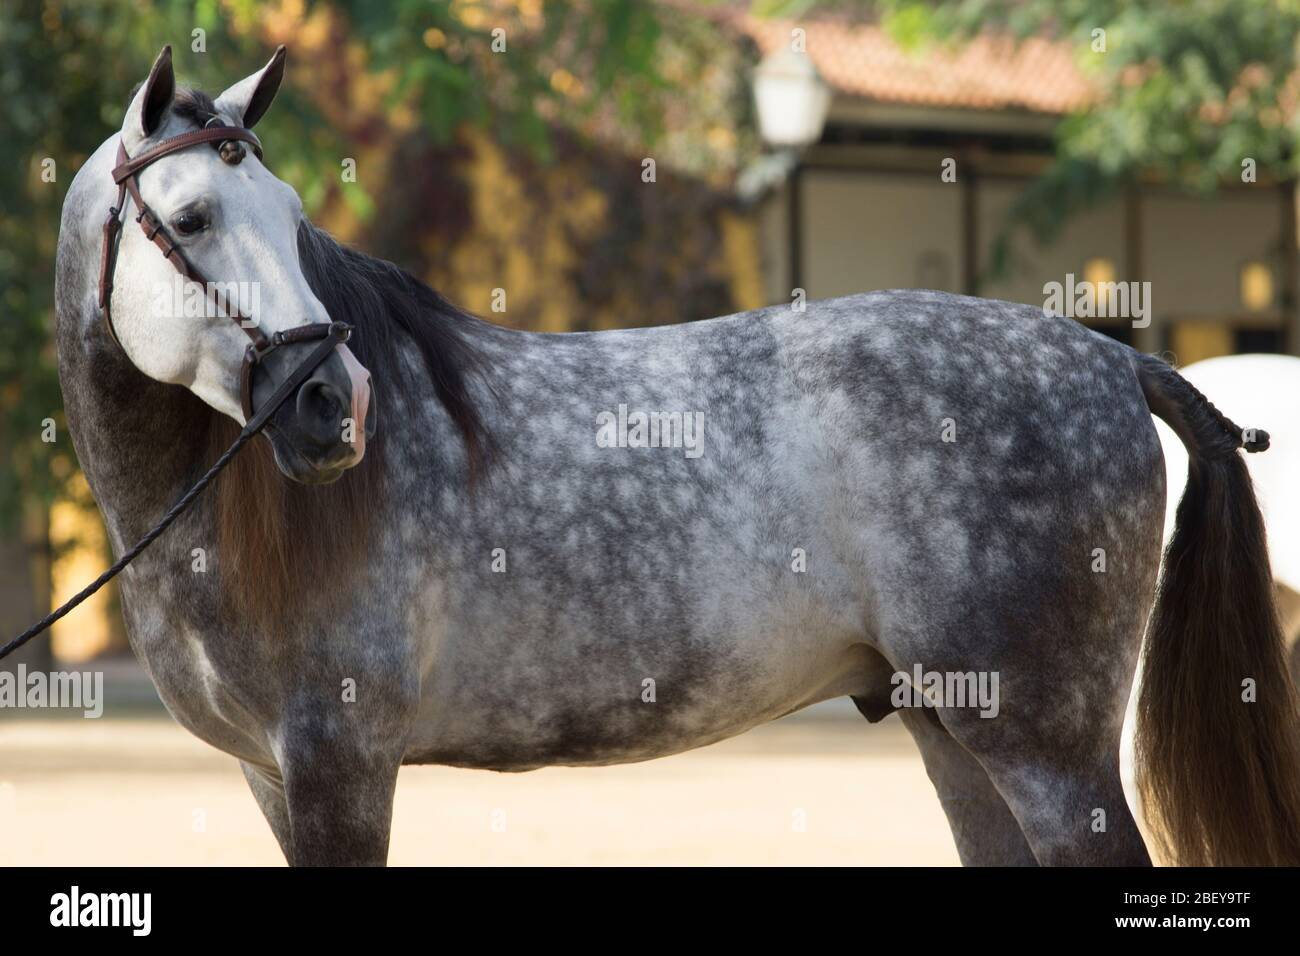 Page 2 Dapple Horse High Resolution Stock Photography And Images Alamy